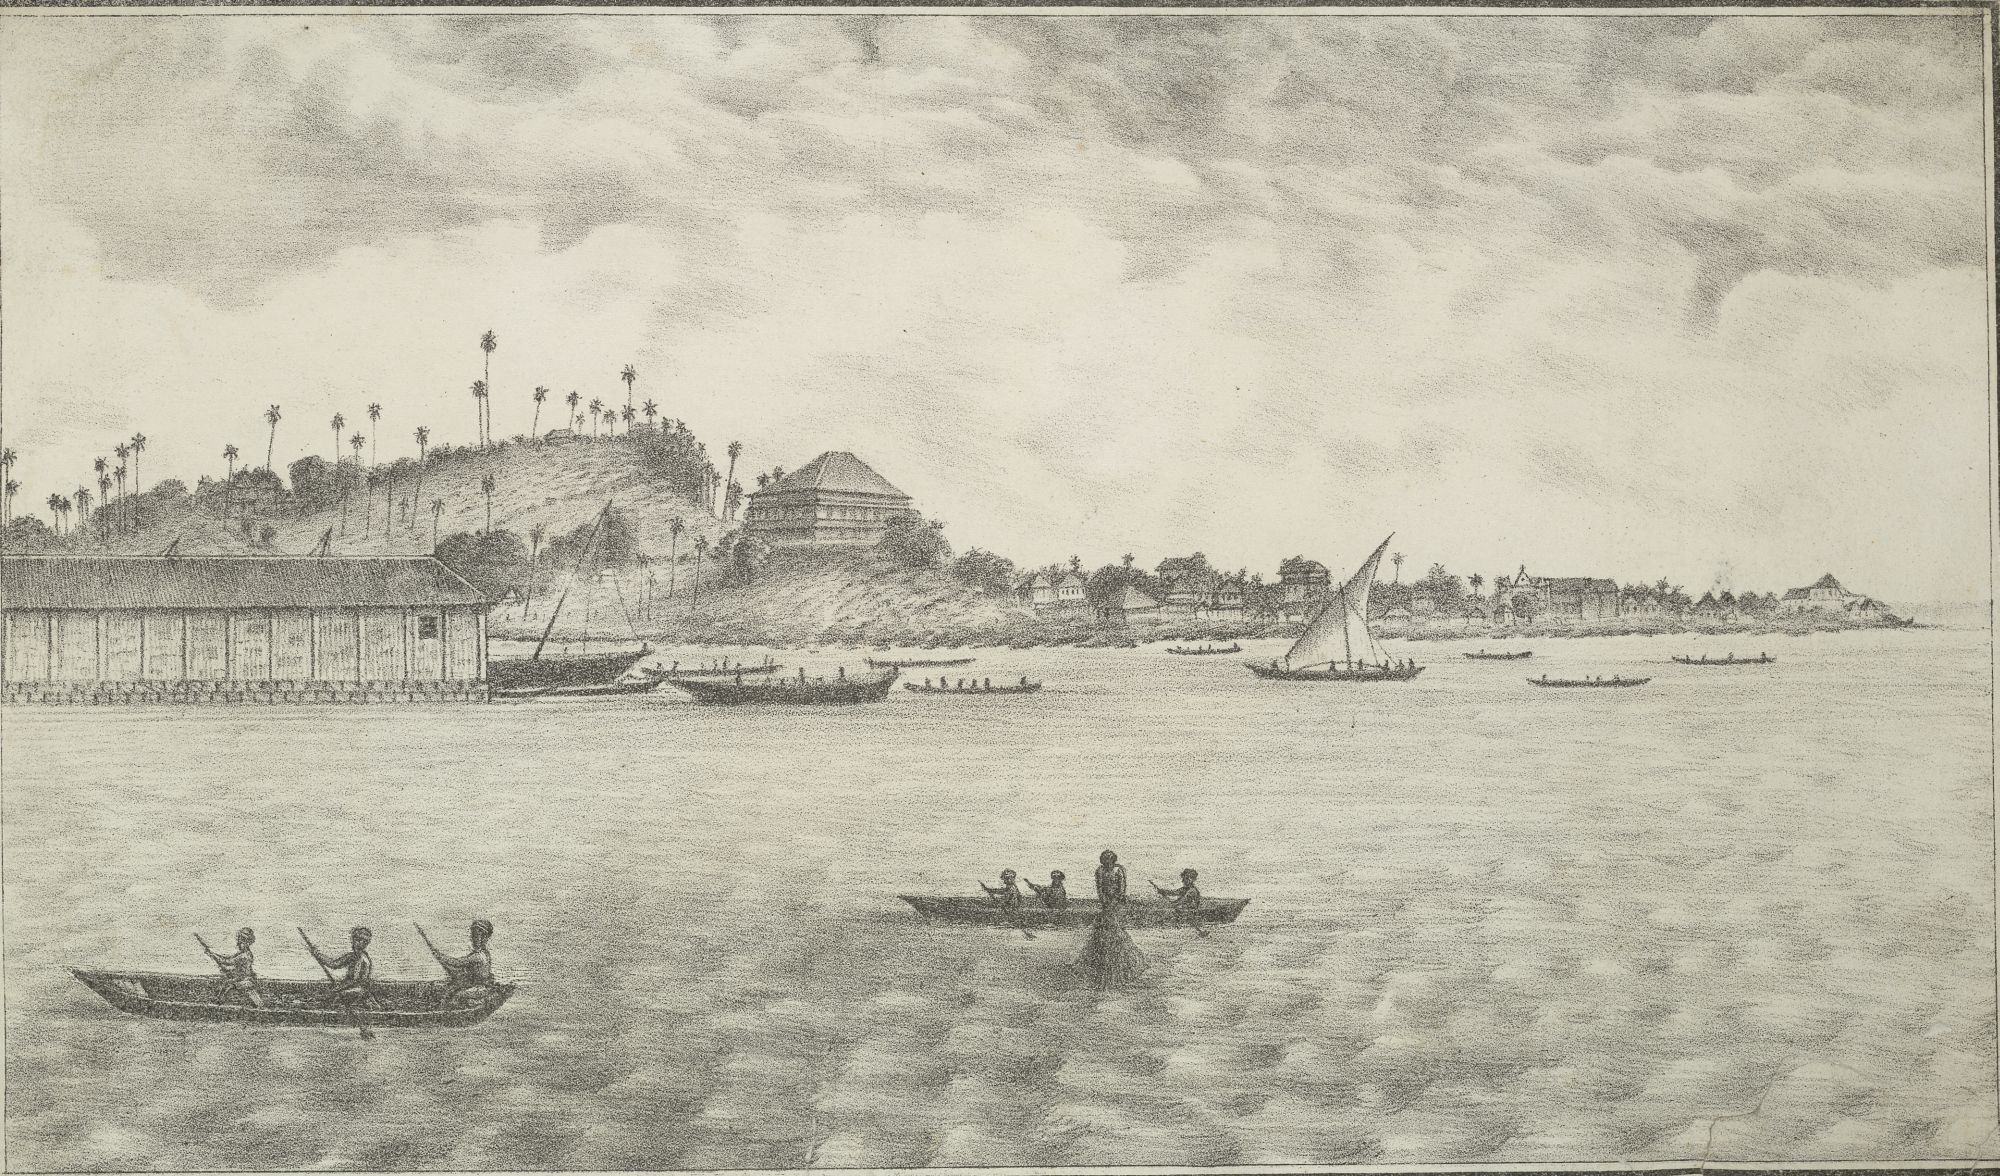 View of Mazagon in J M Gonsalves Lithographic Views of Bombay